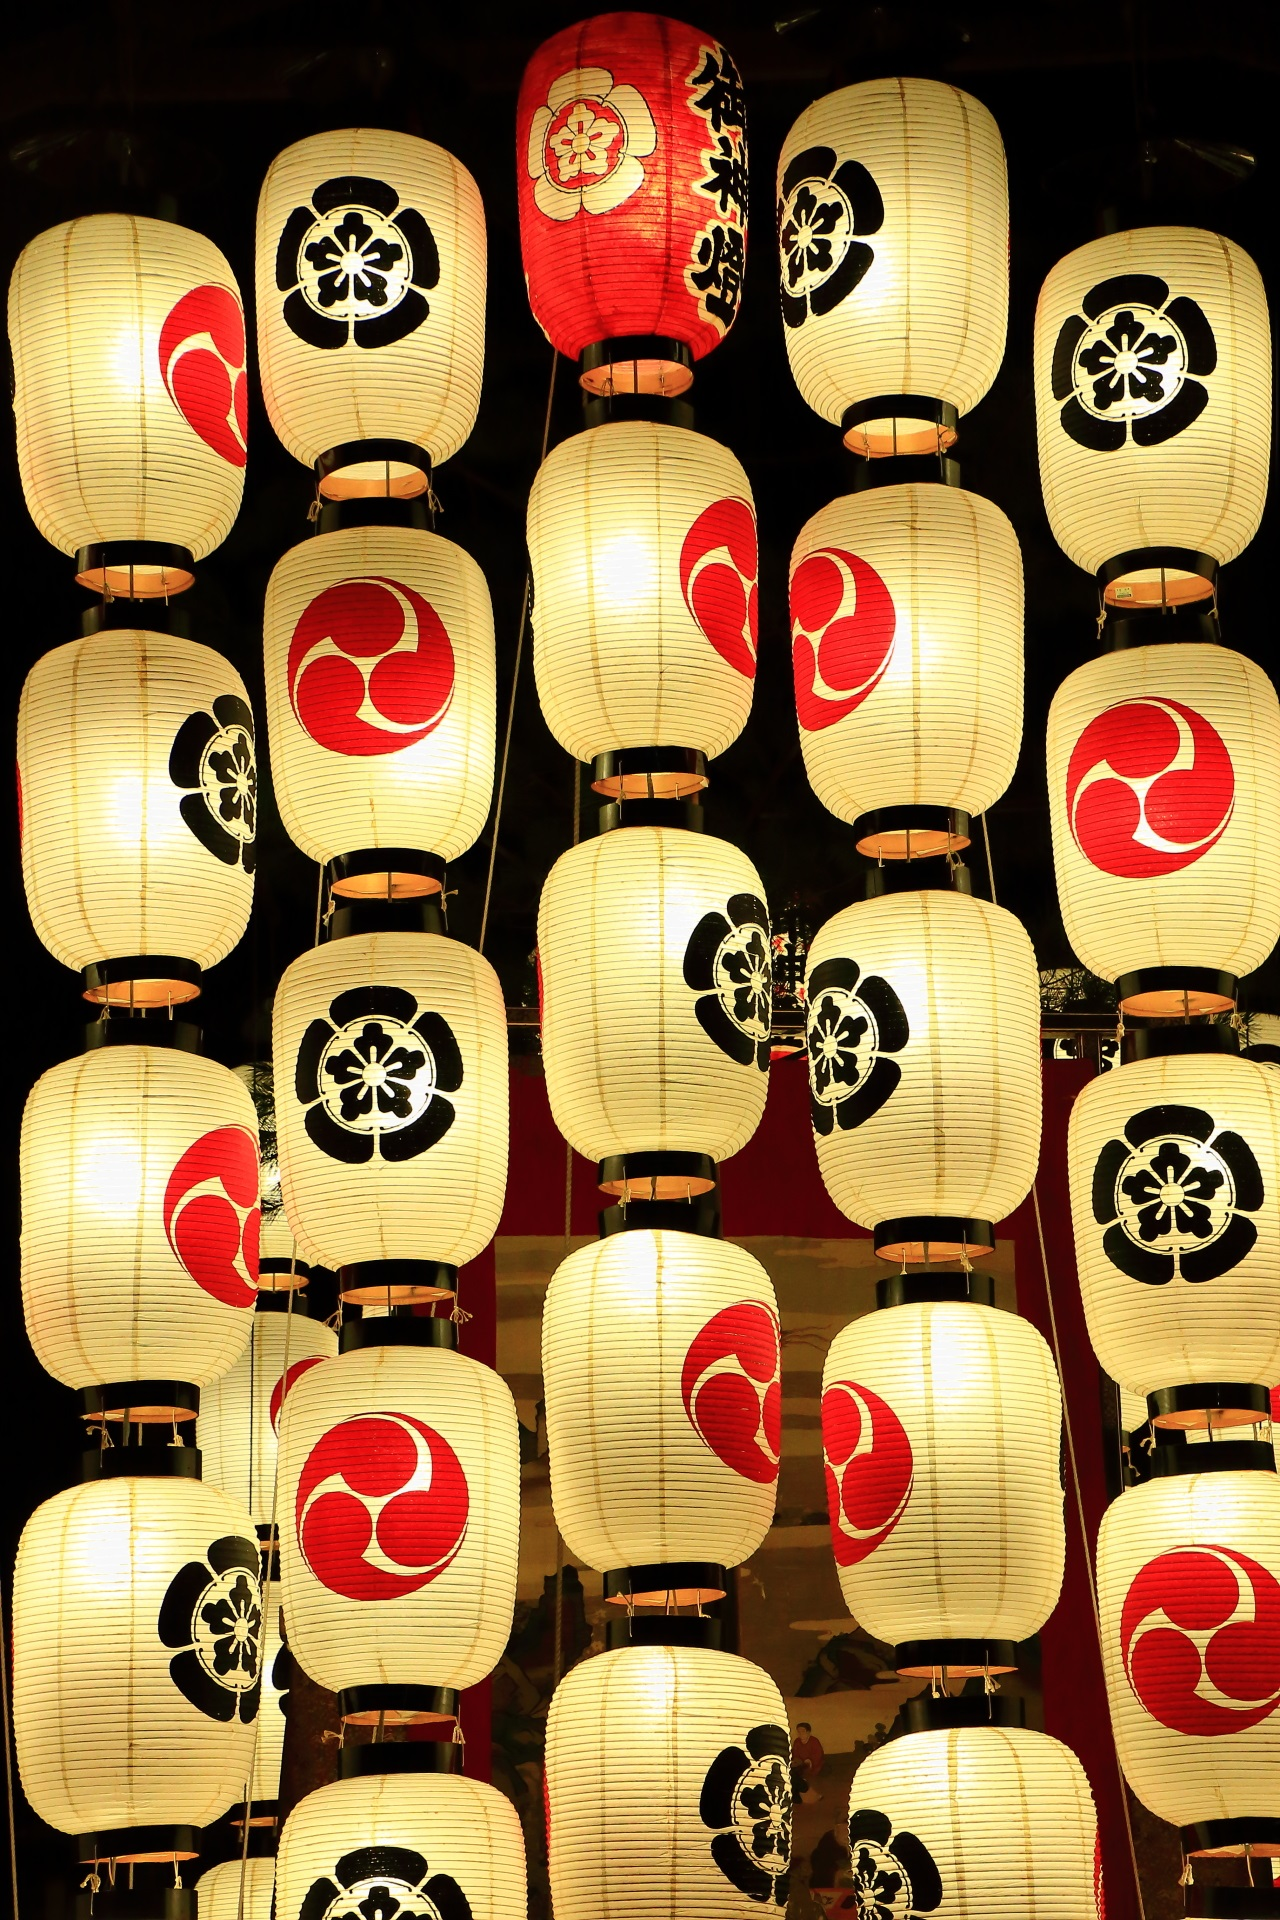 The Yoi-Yama of Kyoto Gion-Festival which is a summer tradition